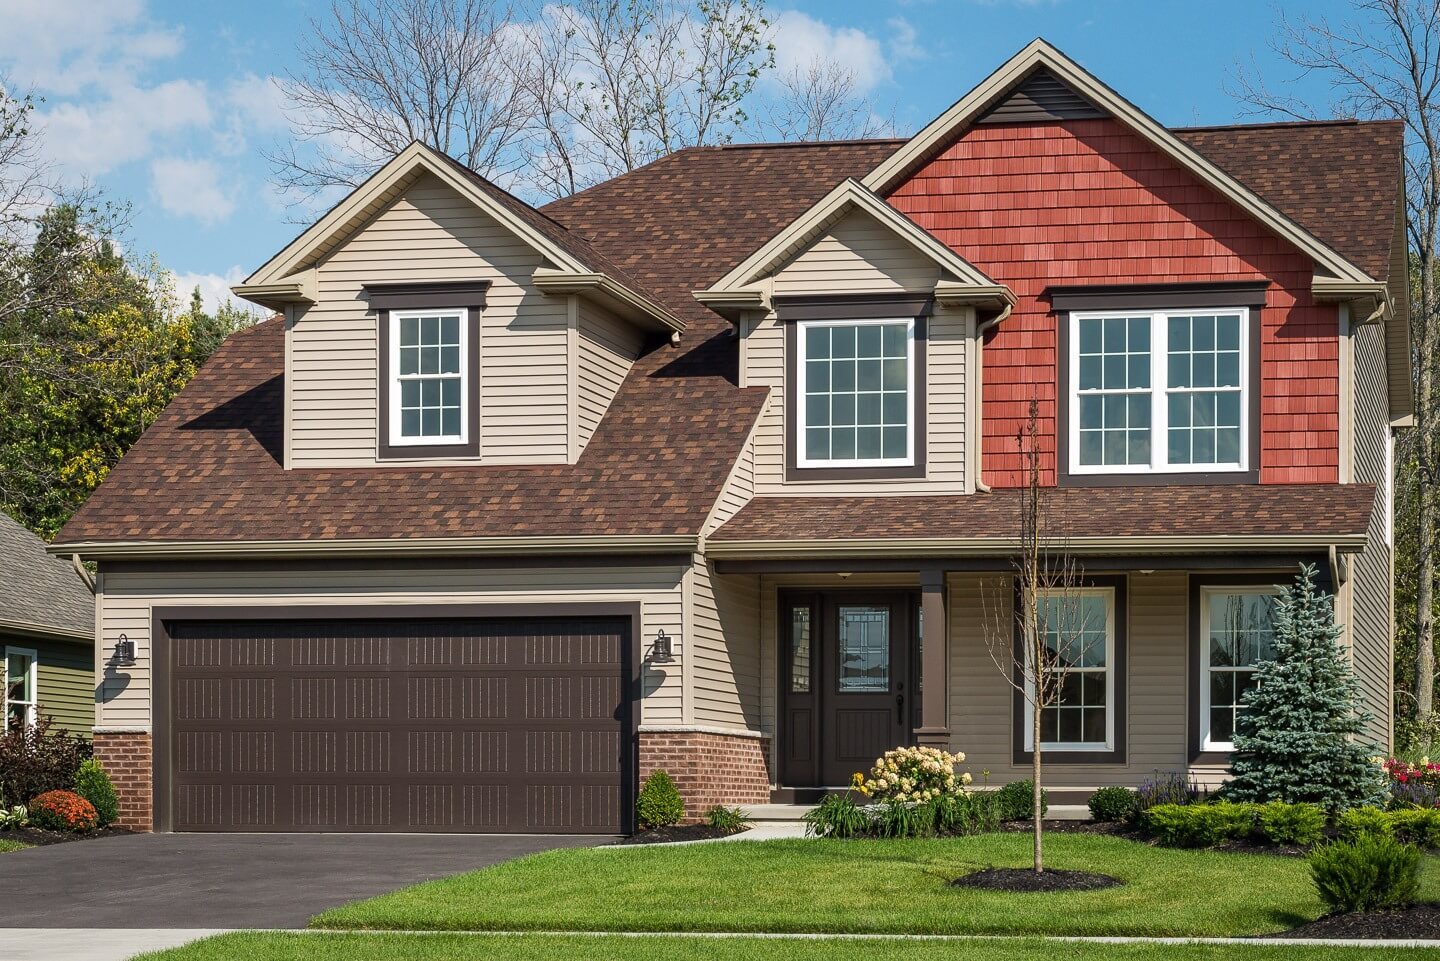 New Home Single Family Design 115 Boxelder Lane, Buffalo, NY 14228